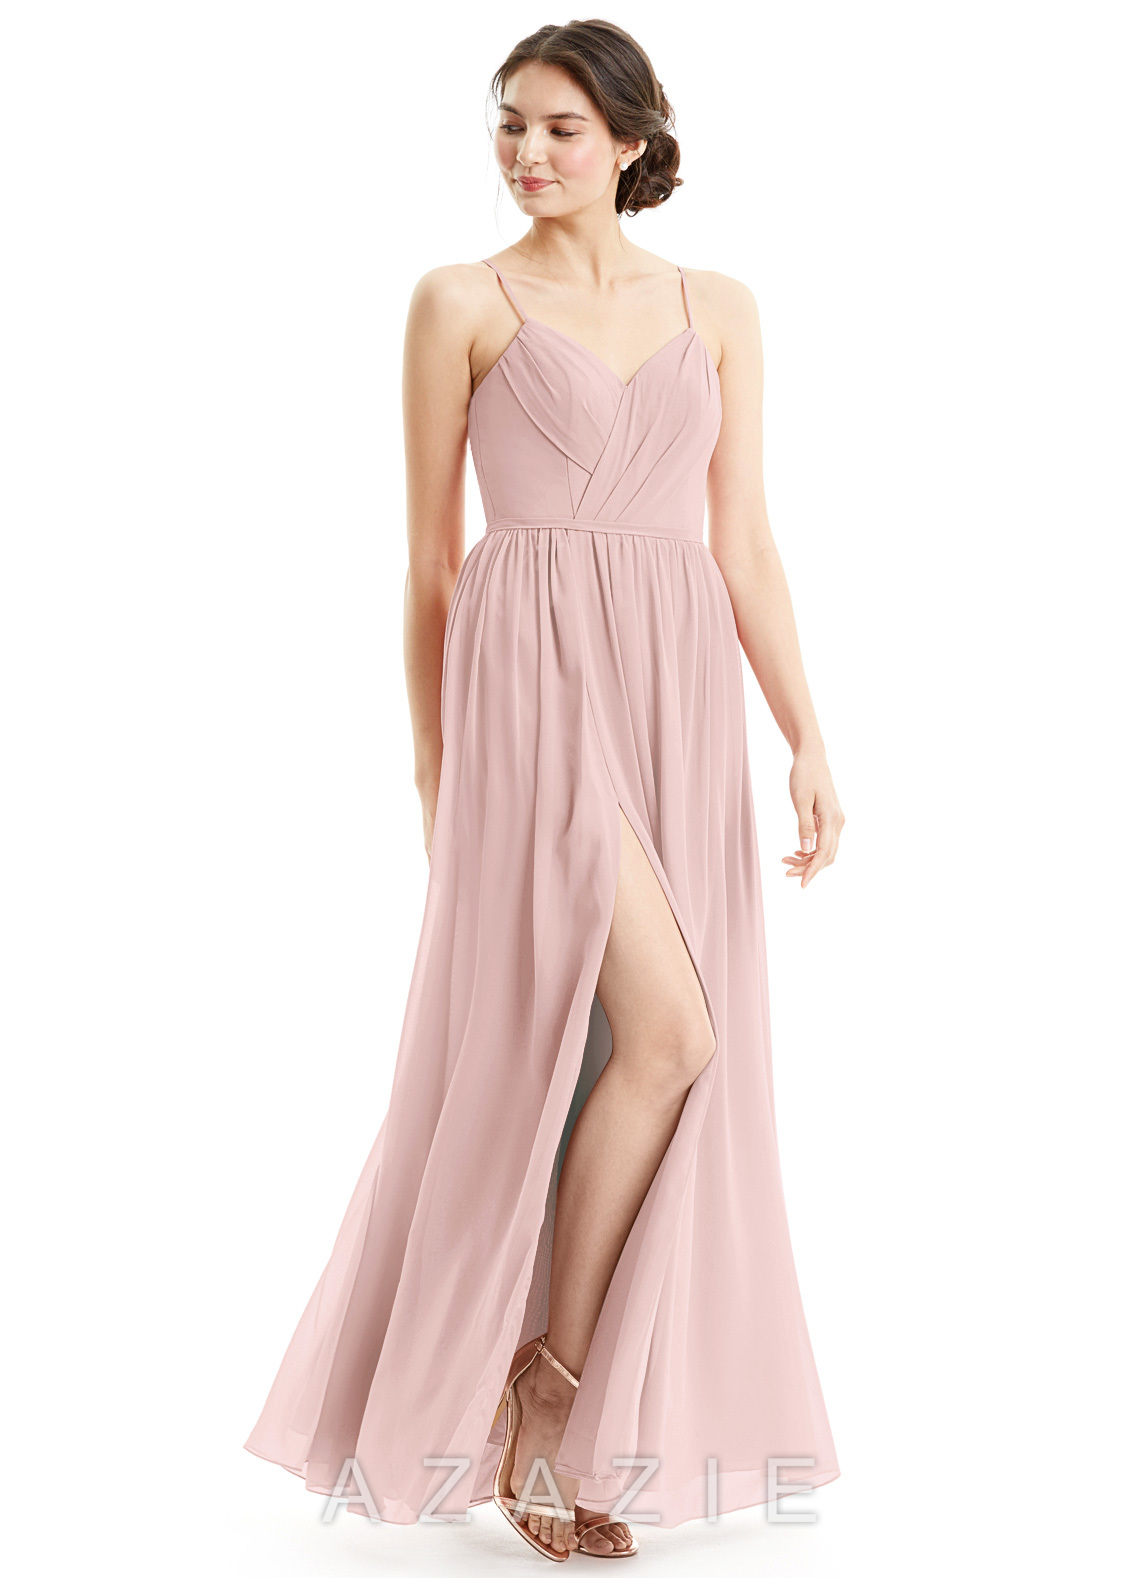 Azazie cora bridesmaid dress azazie color dusty rose ombrellifo Image collections